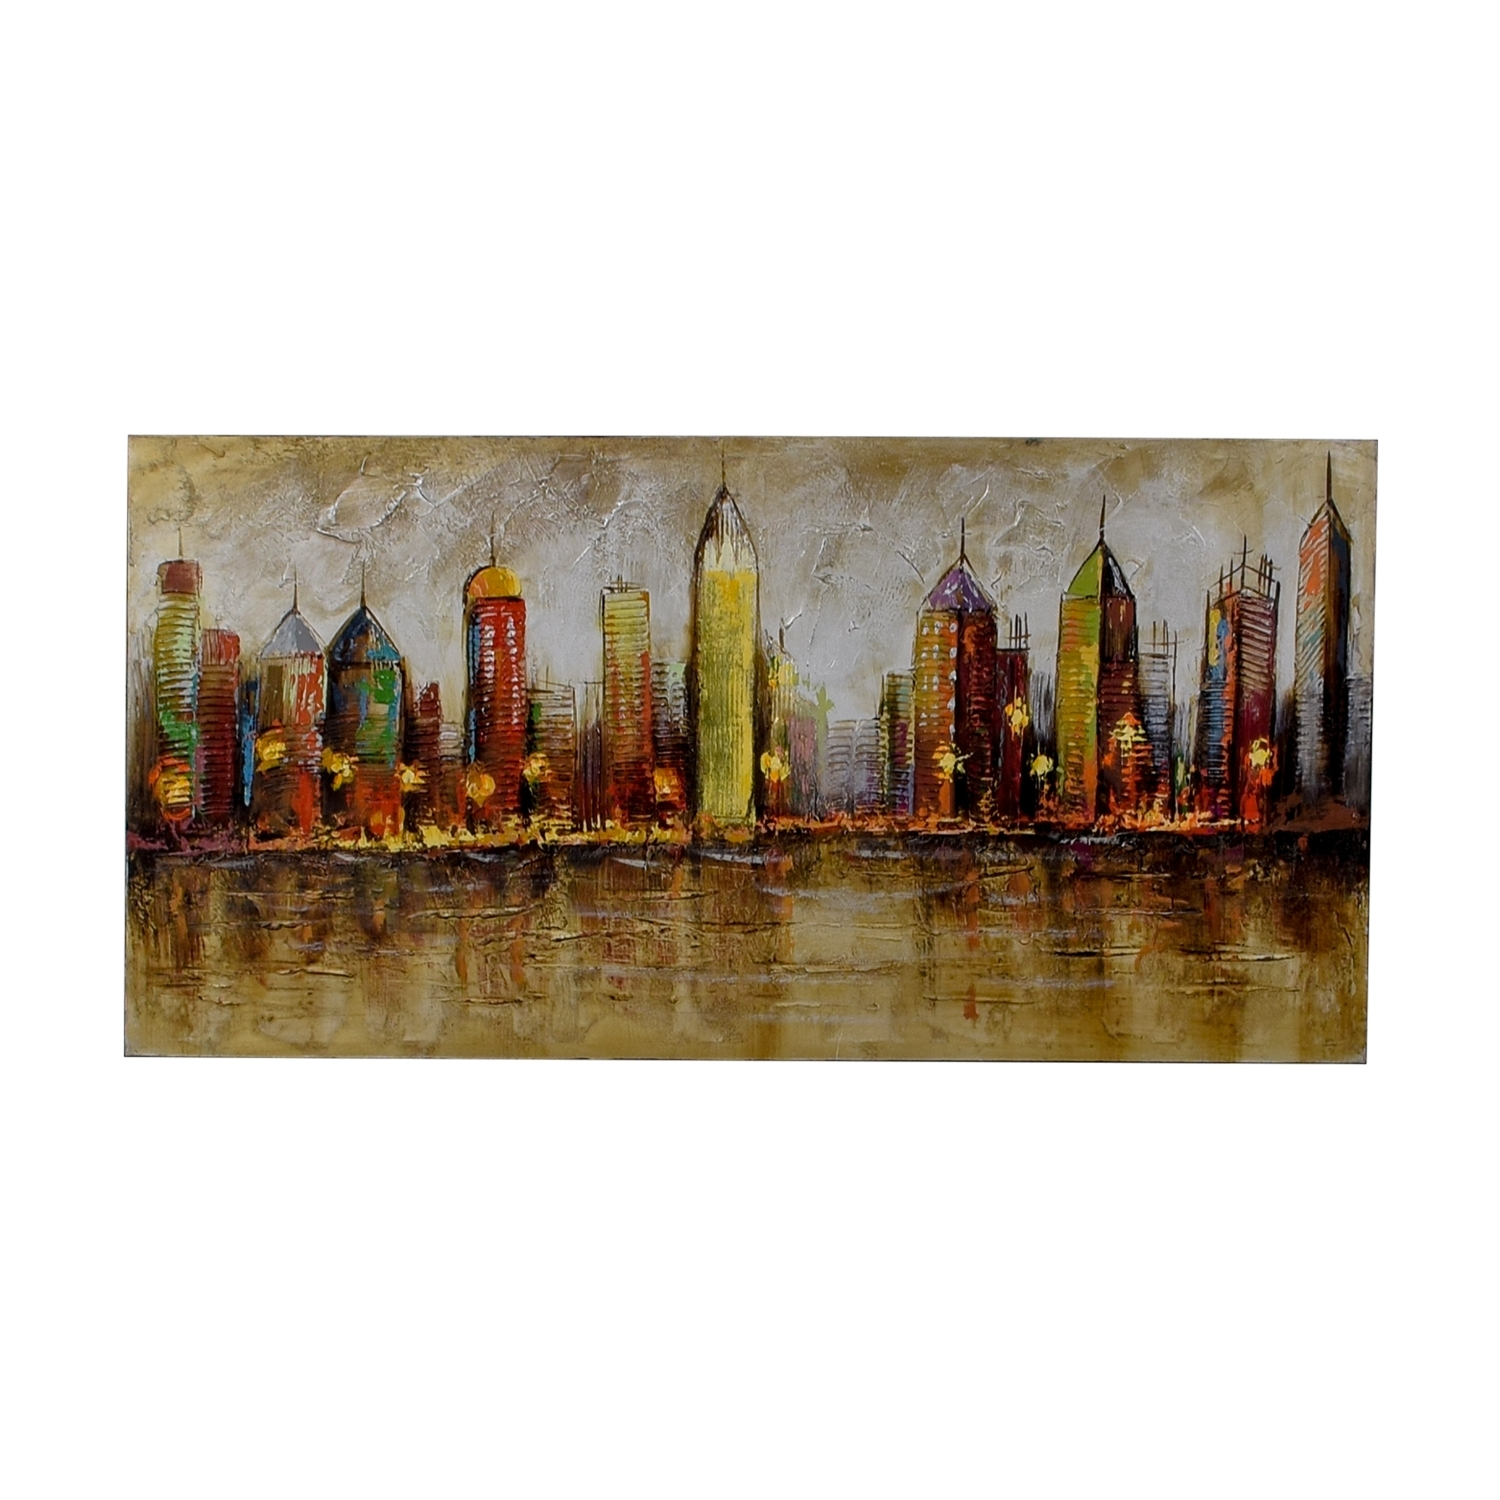 [%80% Off – Pier 1 Imports Pier 1 Imports Cityscape Painting / Decor Pertaining To Recent Pier 1 Wall Art|Pier 1 Wall Art With Trendy 80% Off – Pier 1 Imports Pier 1 Imports Cityscape Painting / Decor|Well Known Pier 1 Wall Art Within 80% Off – Pier 1 Imports Pier 1 Imports Cityscape Painting / Decor|2017 80% Off – Pier 1 Imports Pier 1 Imports Cityscape Painting / Decor Within Pier 1 Wall Art%] (View 2 of 15)